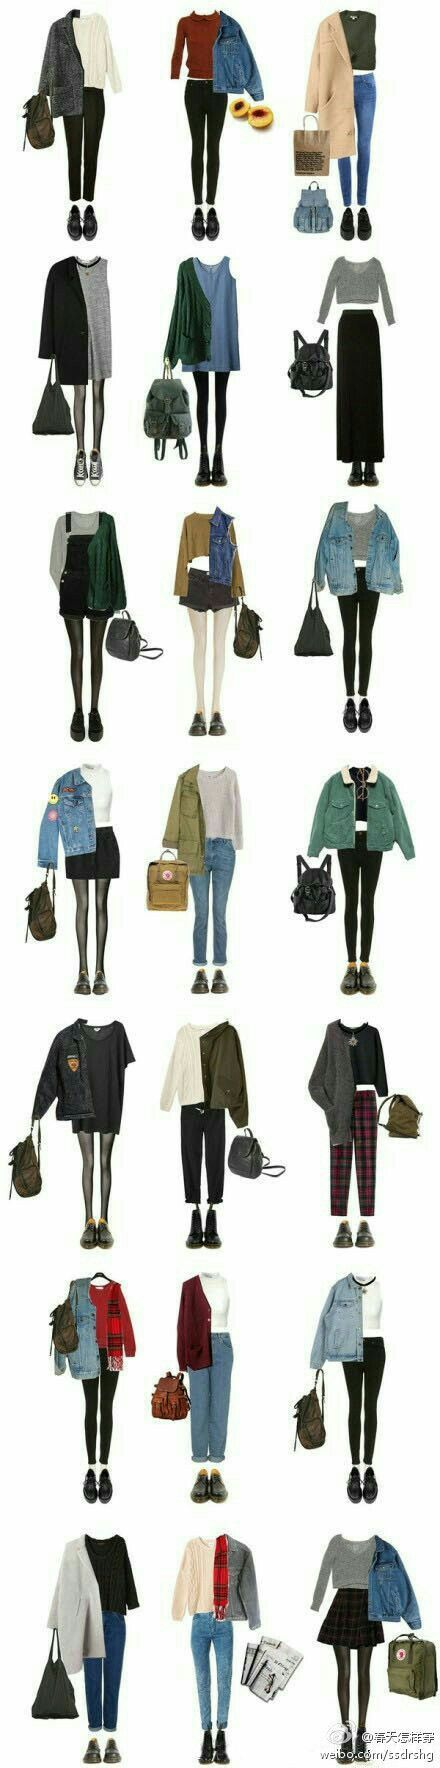 3bfeae8fe 22 Cute Summer Outfit Ideas for Teen Girls